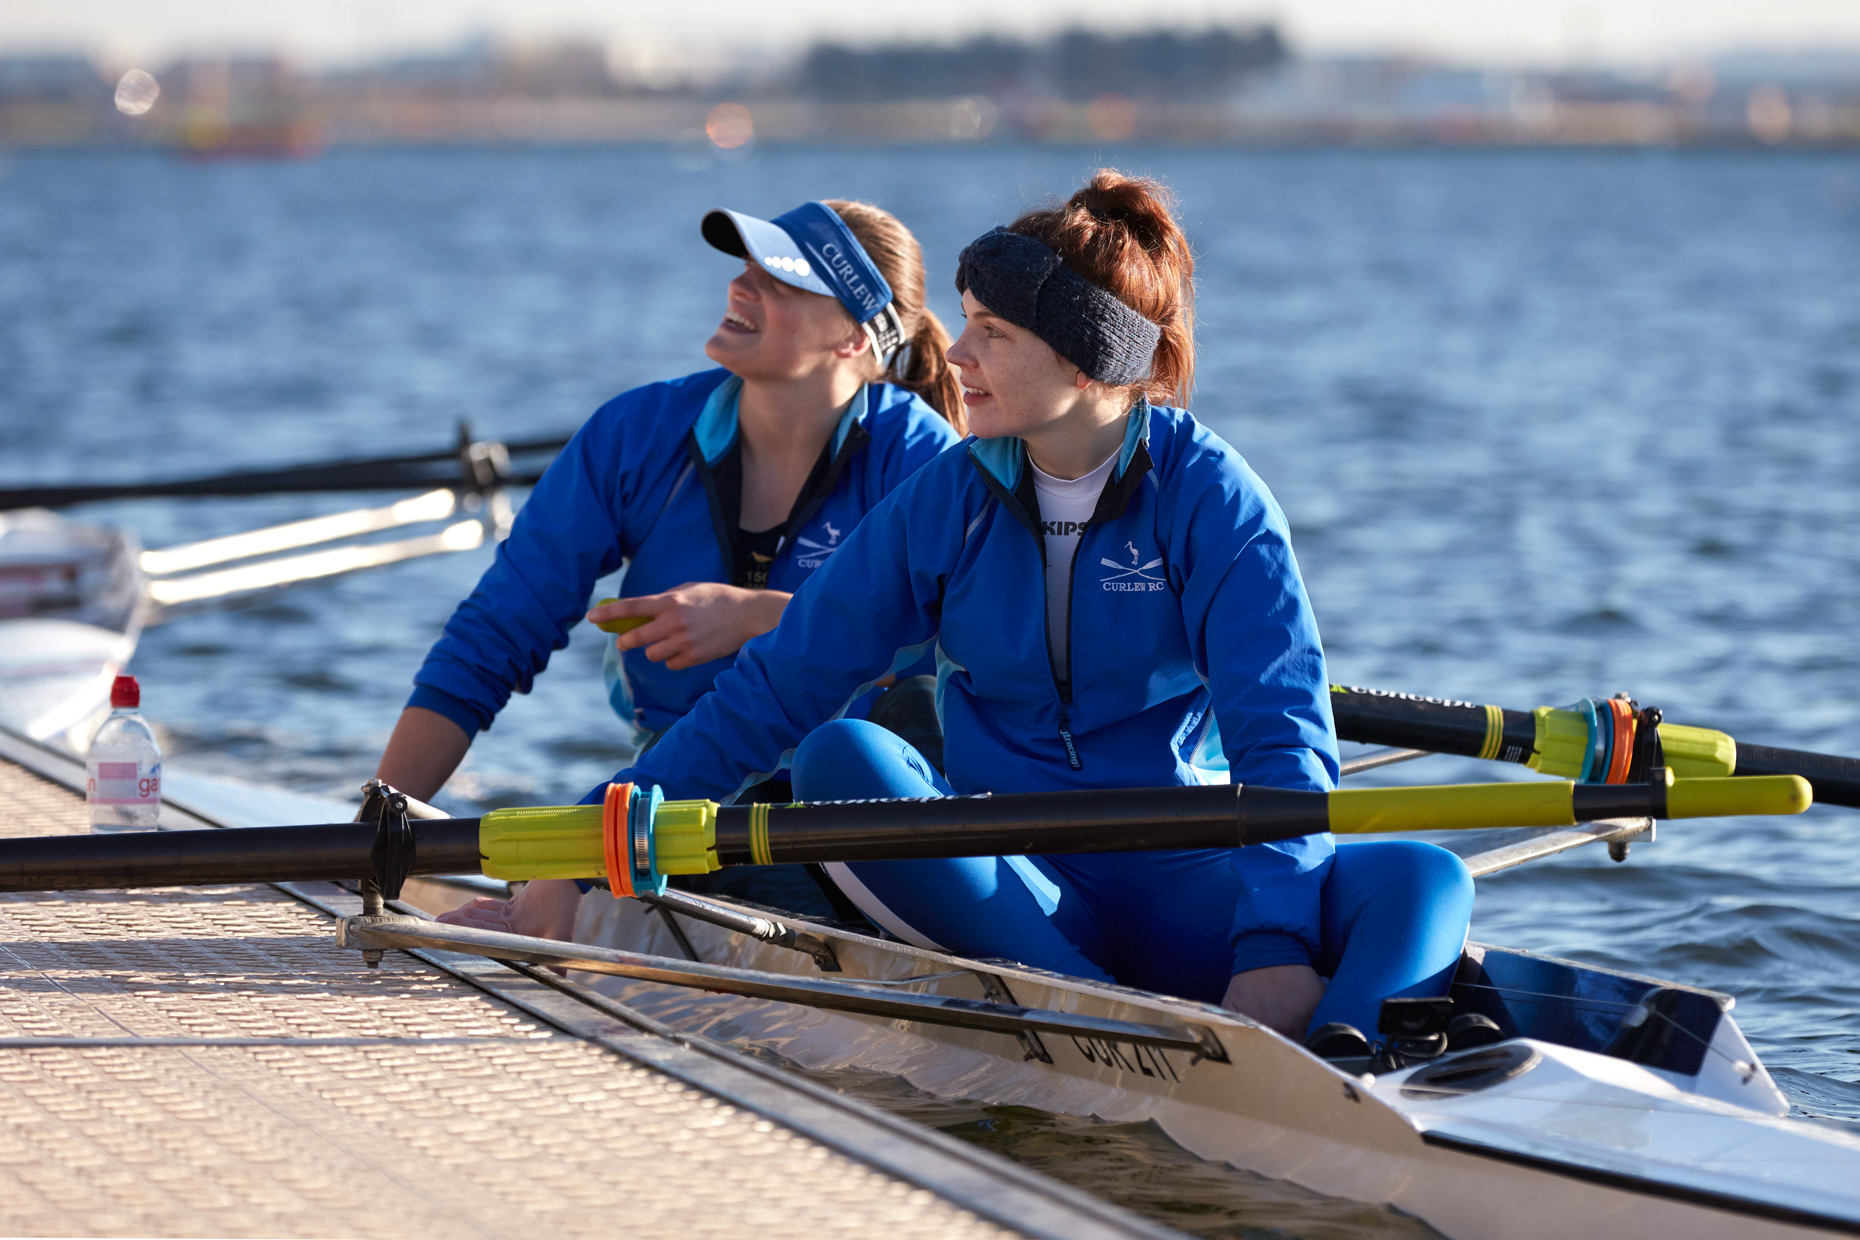 BMC_ROWING4